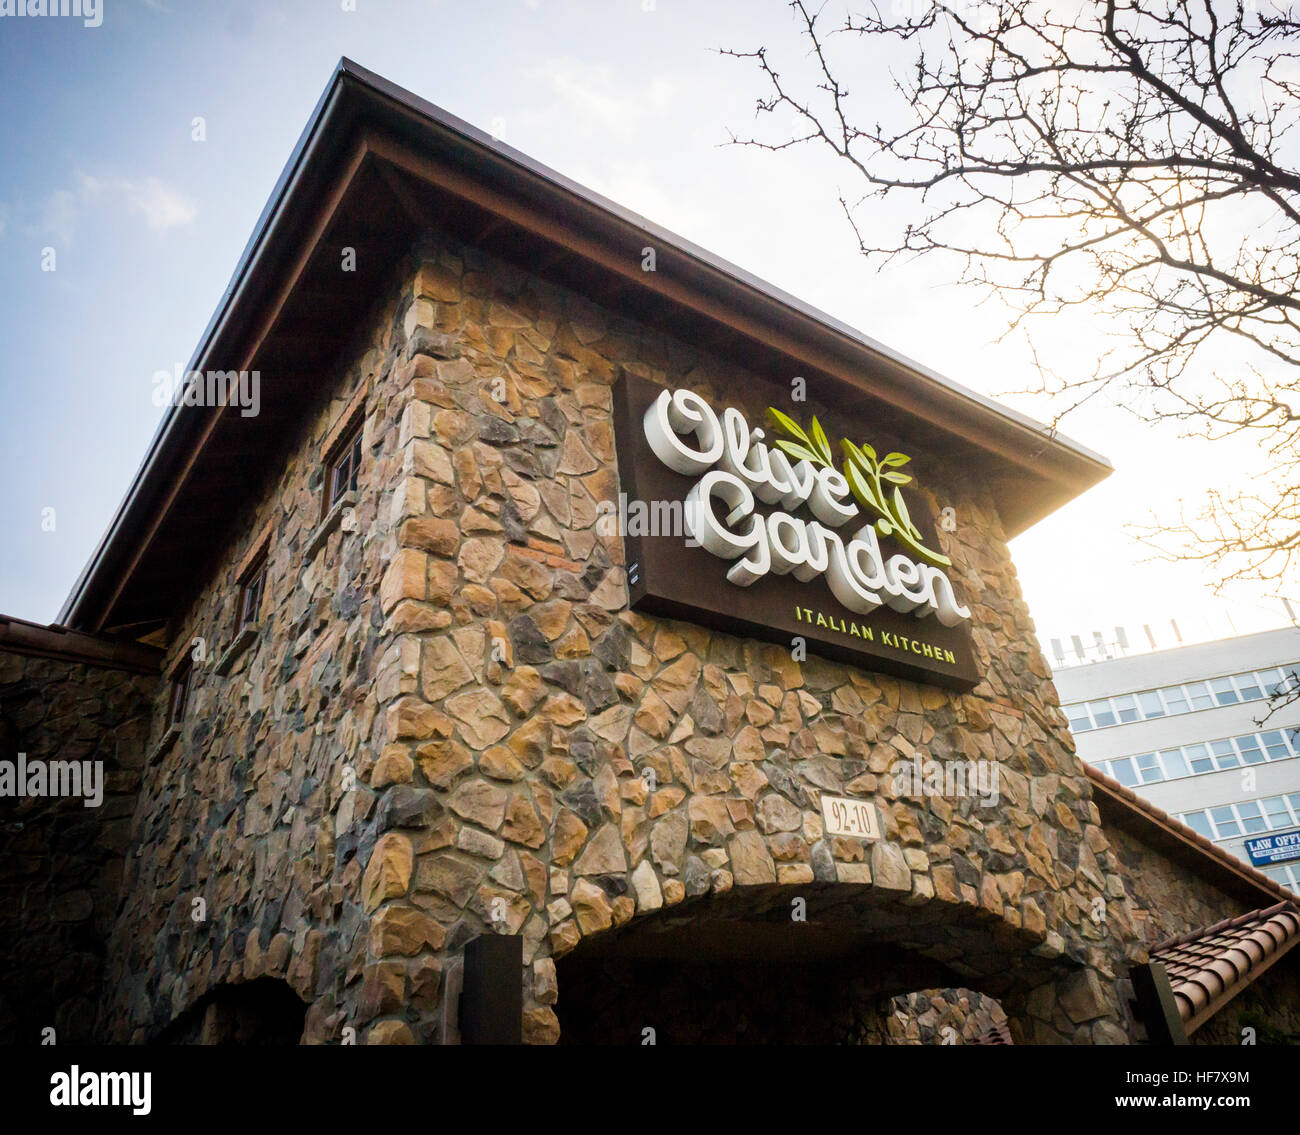 Darden Stock Photos & Darden Stock Images - Alamy